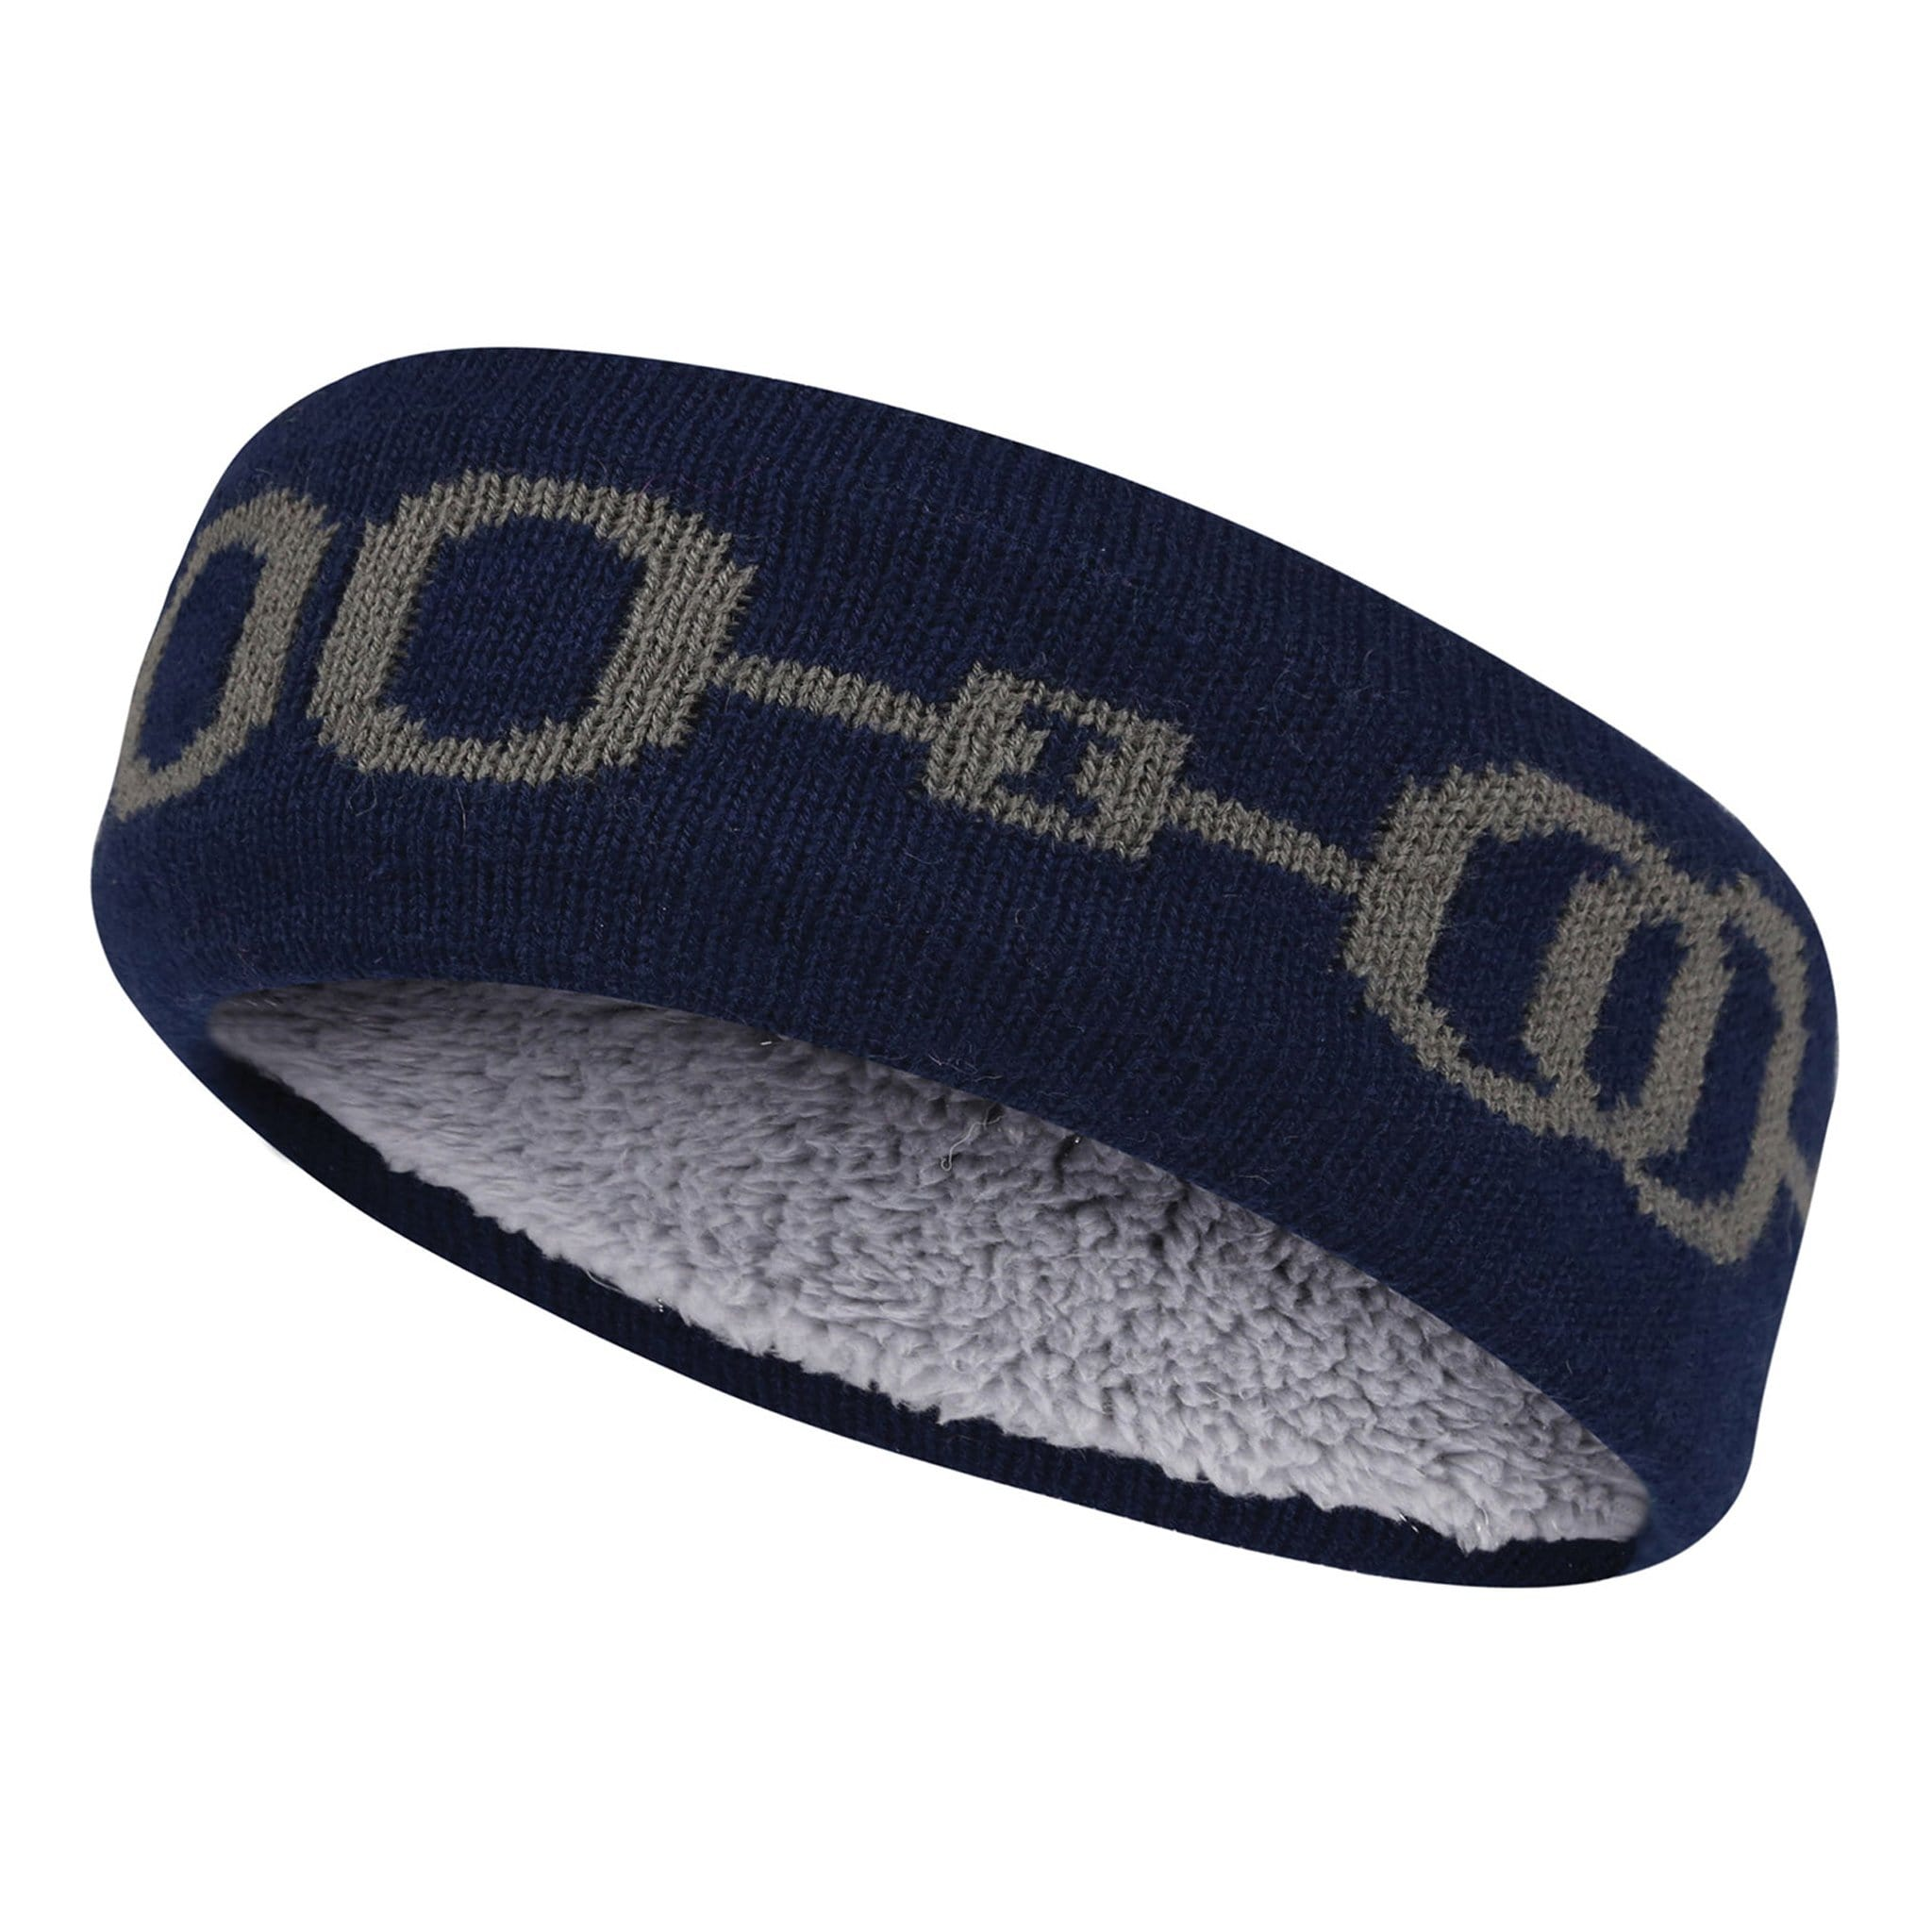 Equetech Horse Bit Knit Headband HBH Navy Side View